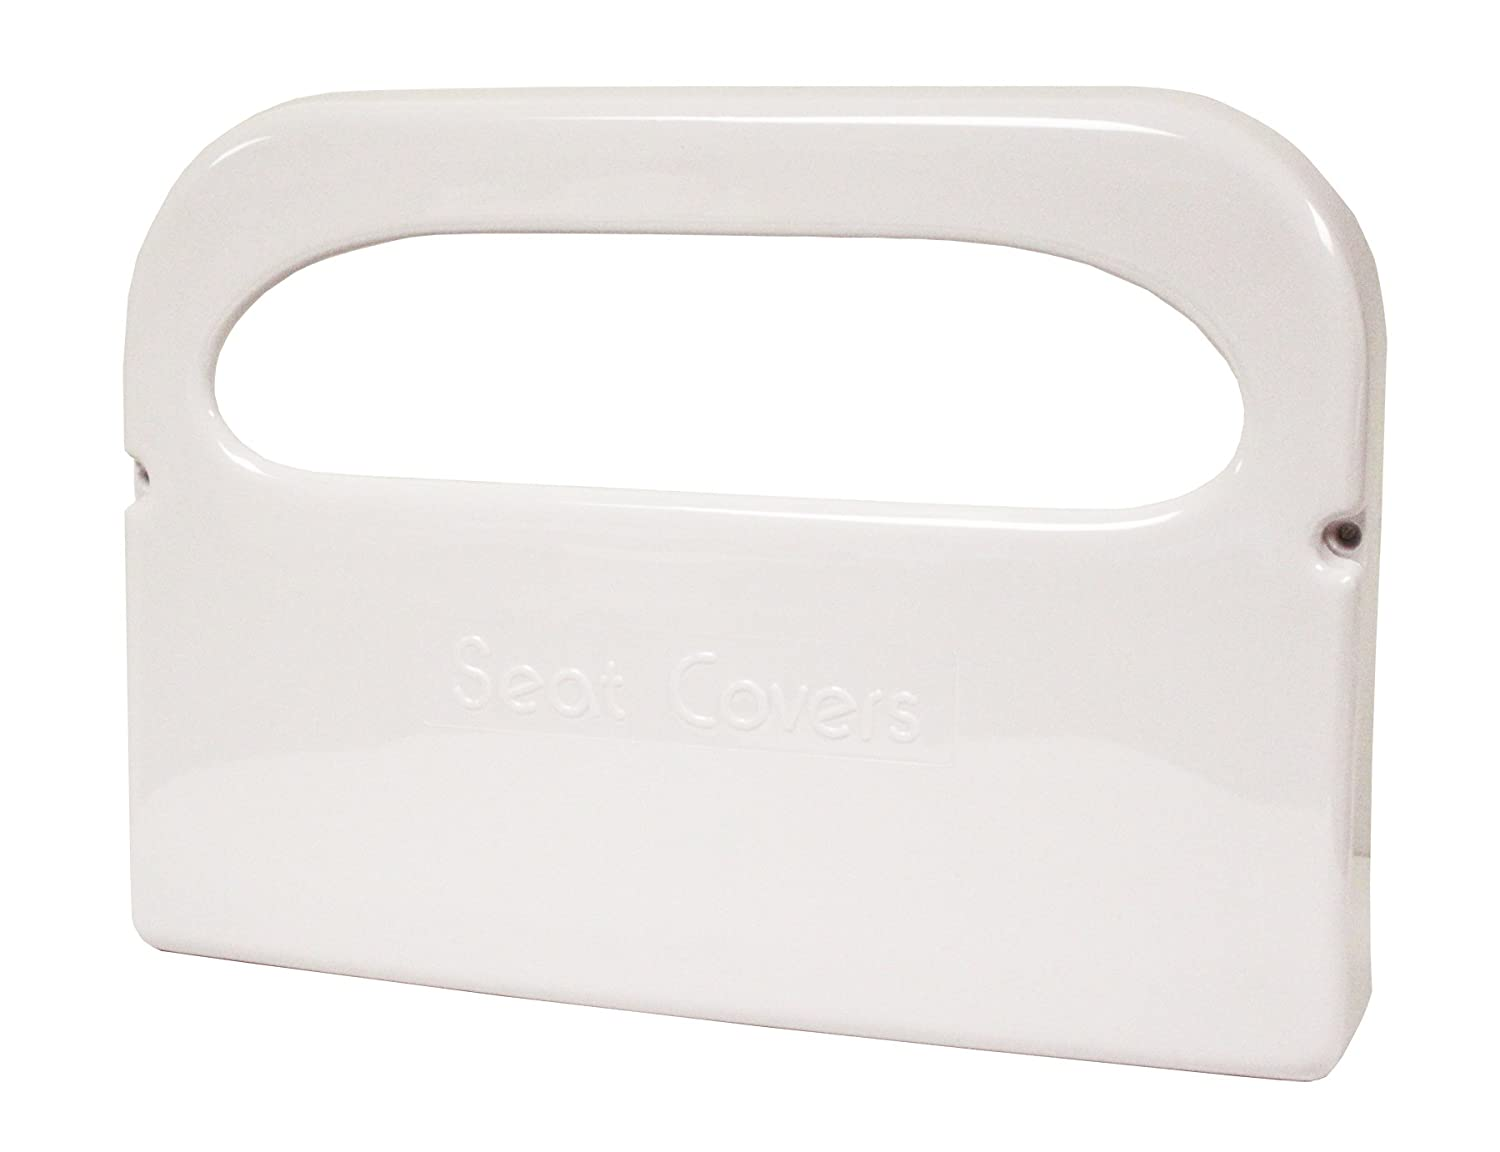 Stupendous Amazon Com 1 2 Fold Toilet Seat Cover Dispenser White Onthecornerstone Fun Painted Chair Ideas Images Onthecornerstoneorg